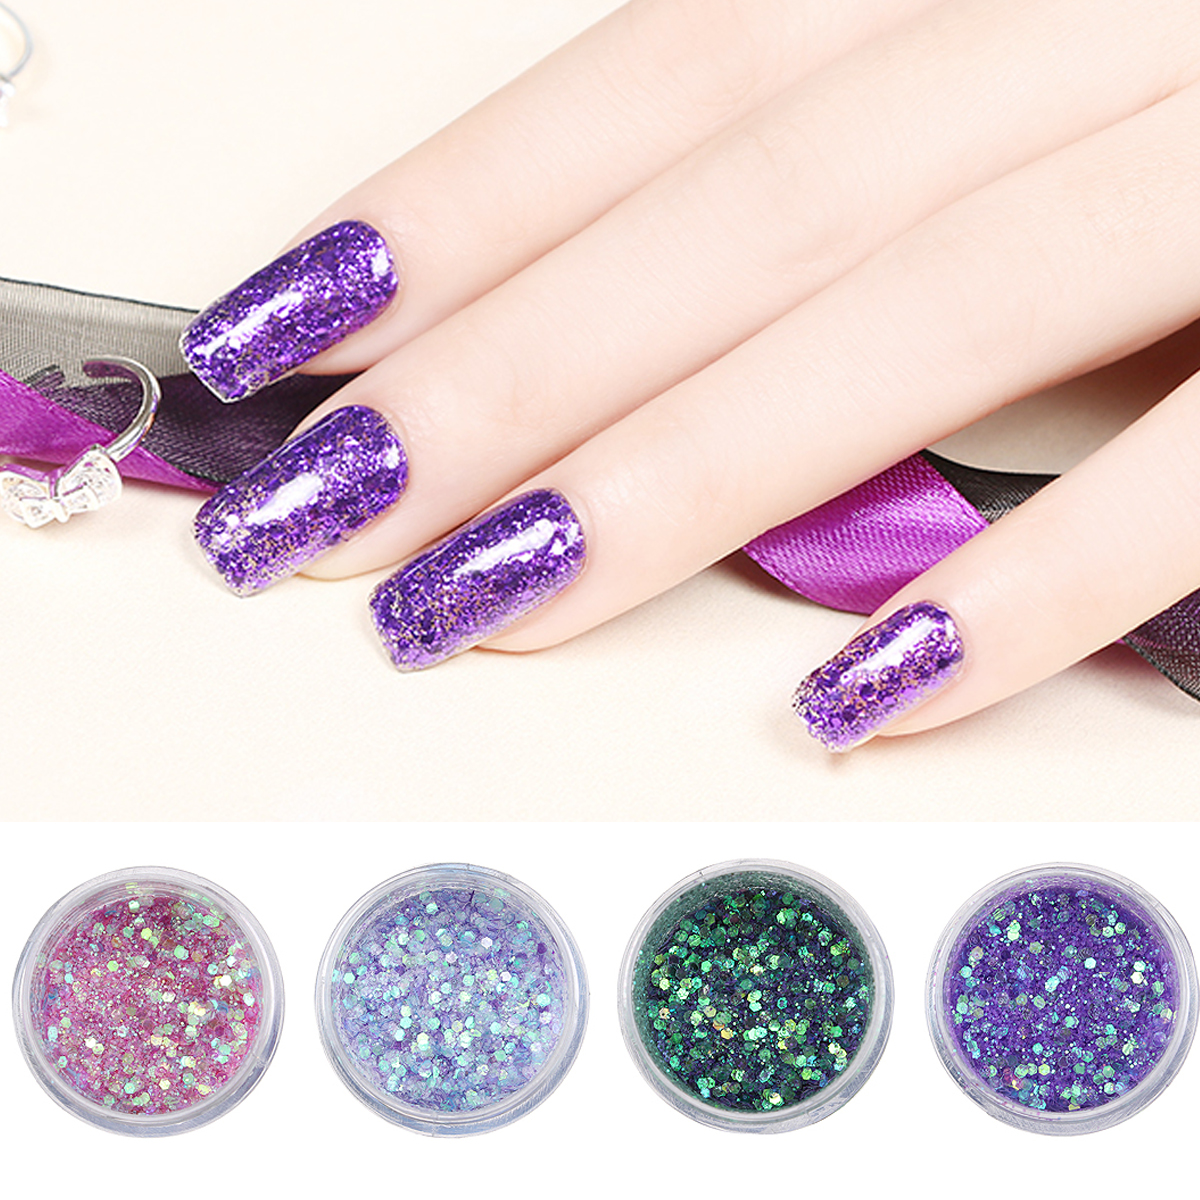 Glitter Nail Decoration Powder Manicure Salon Shinning